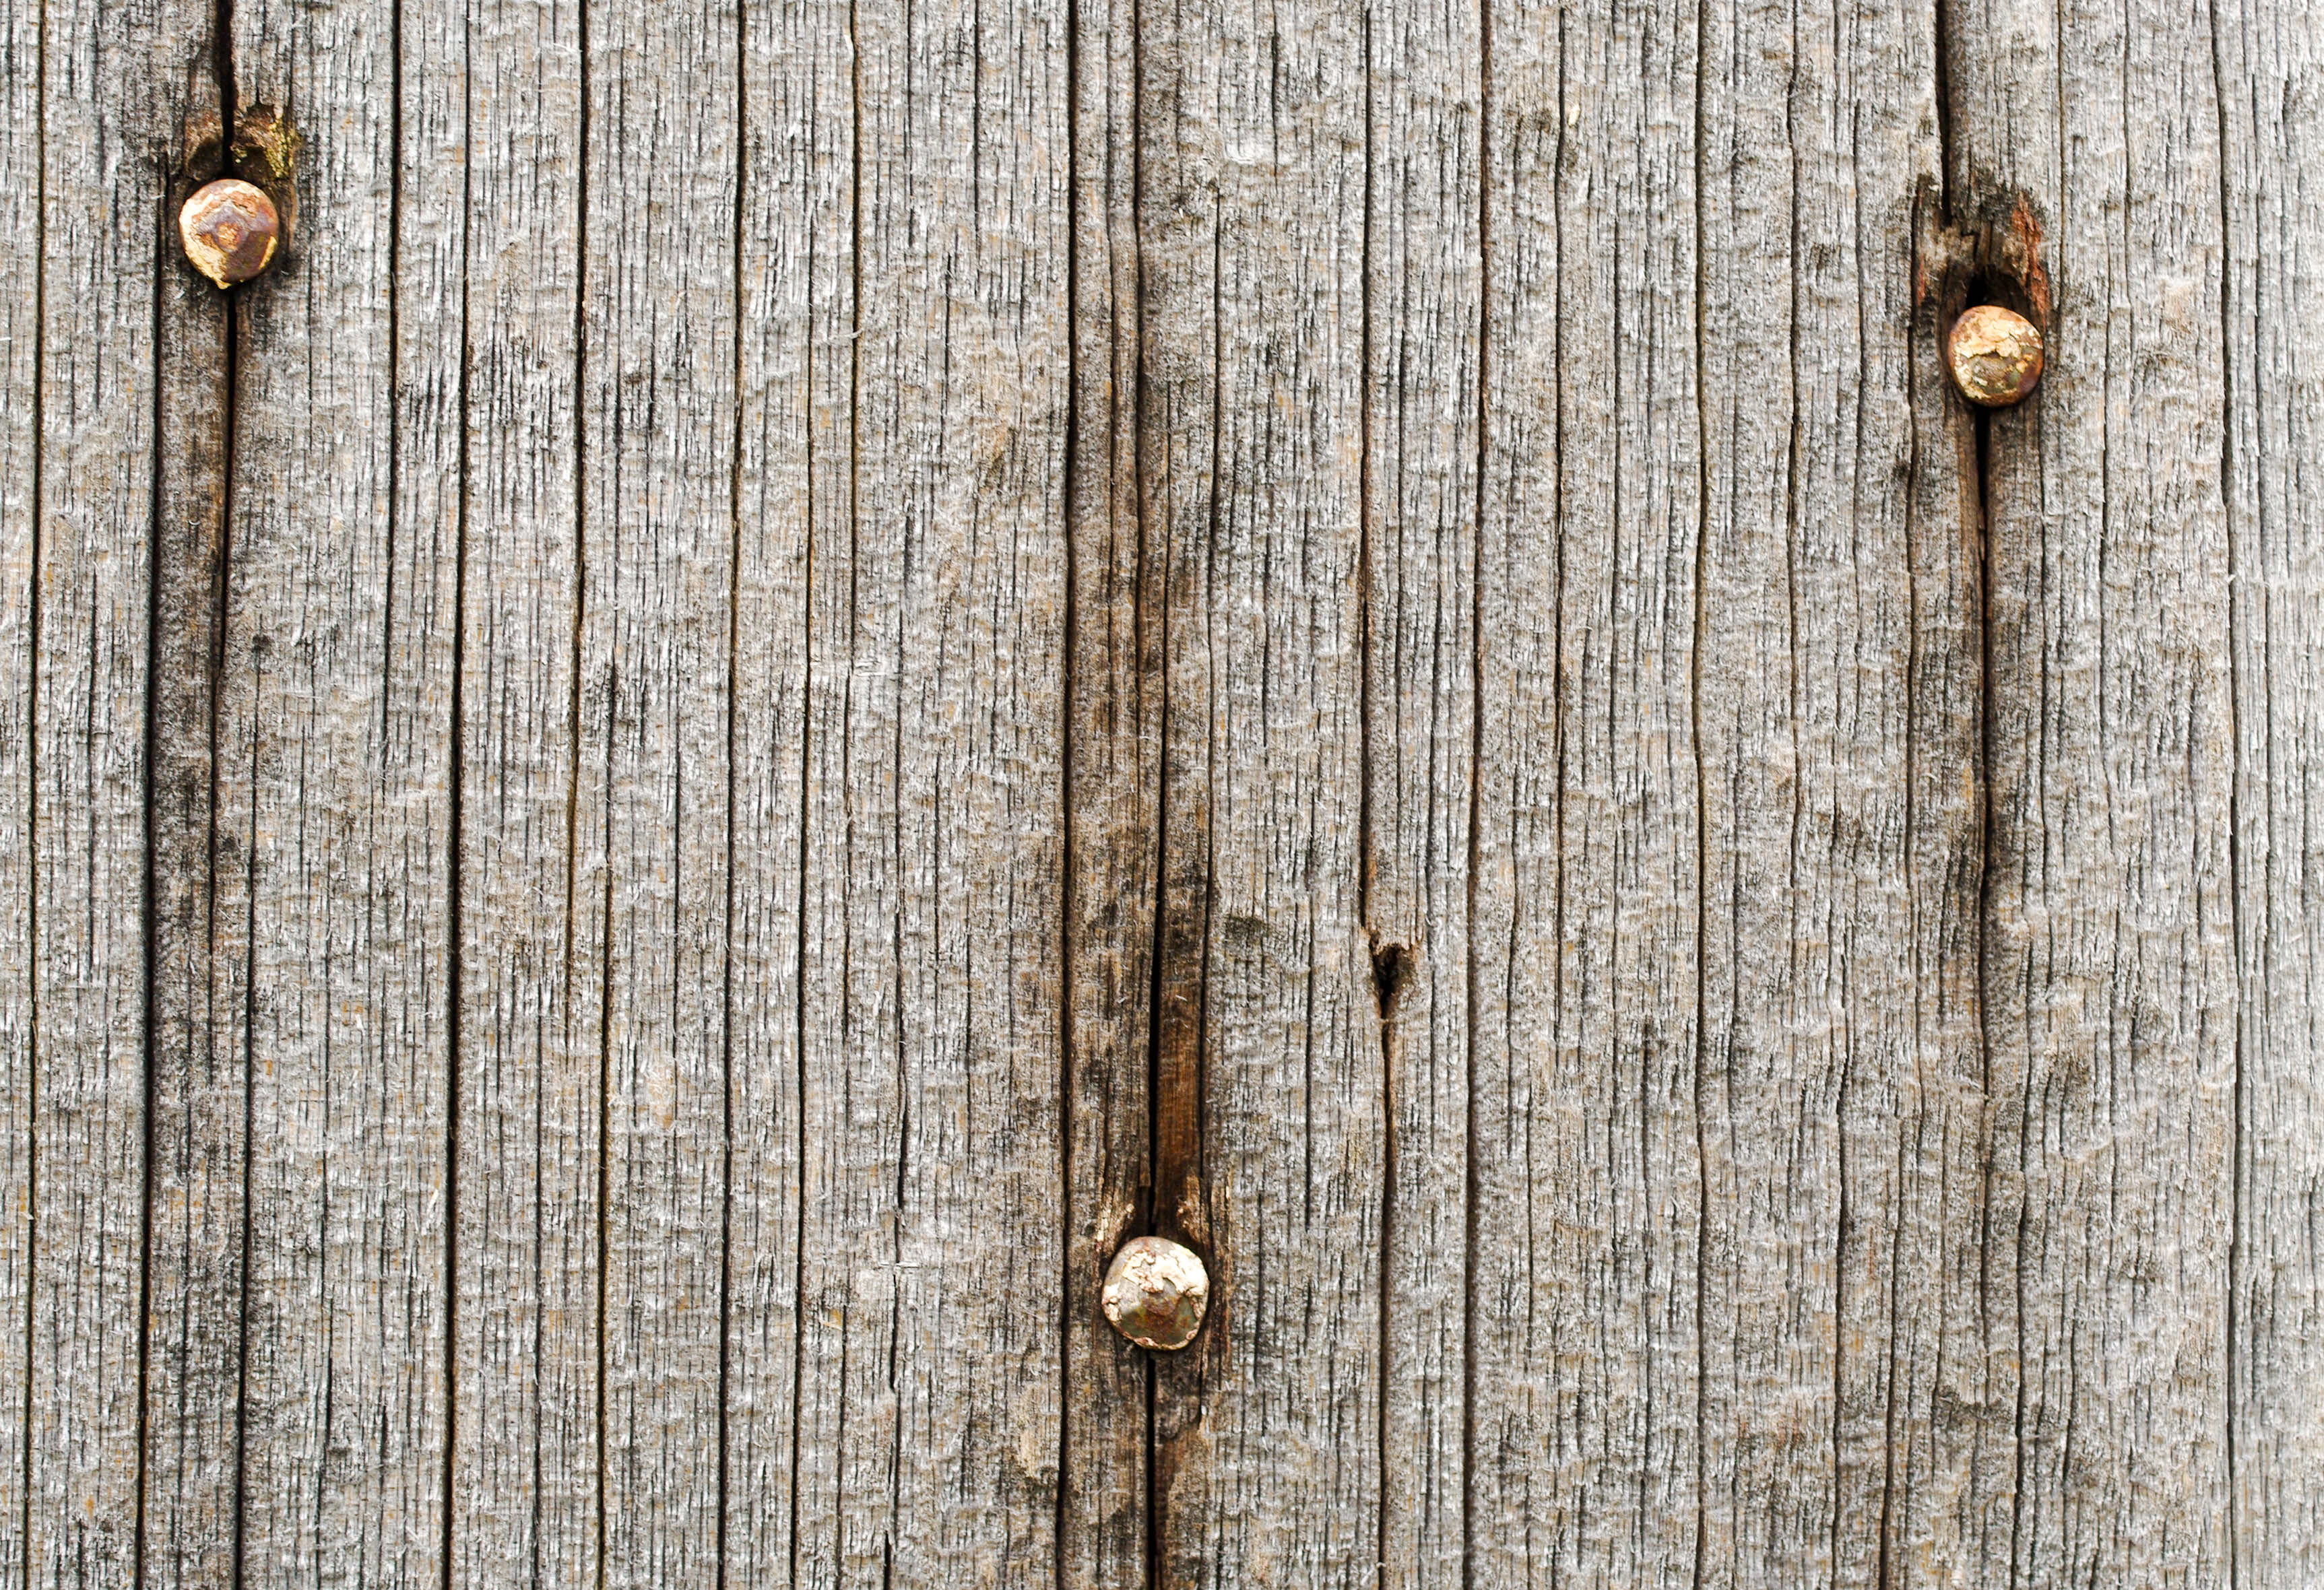 grungy wood background textures - photo #25